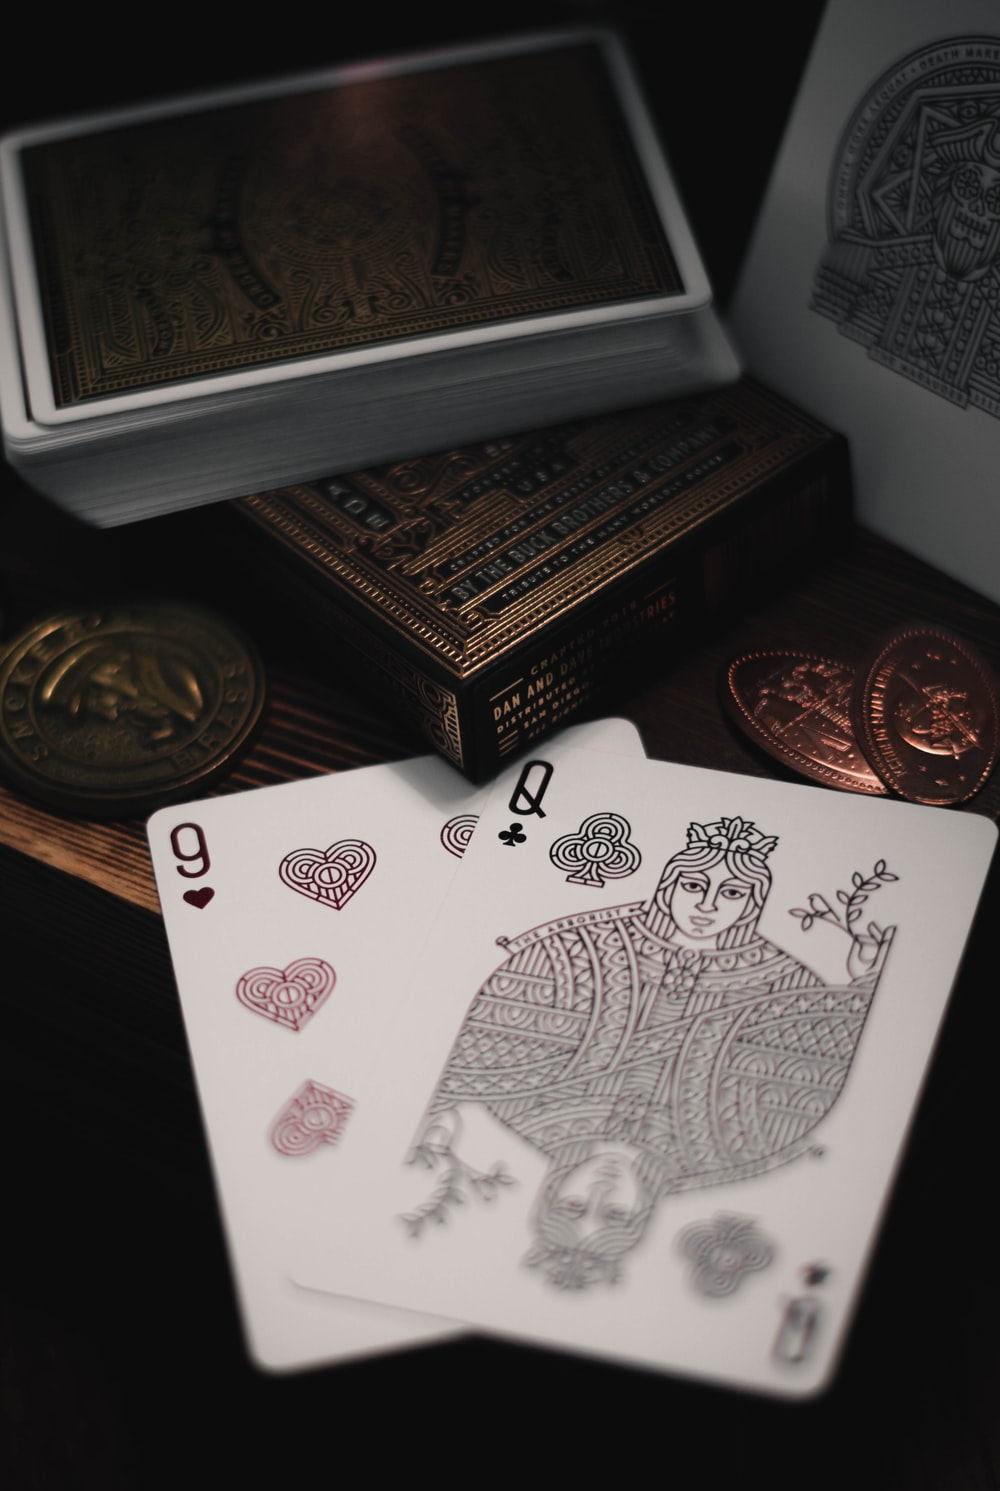 9 of hearts and Queen of clubs playing cards